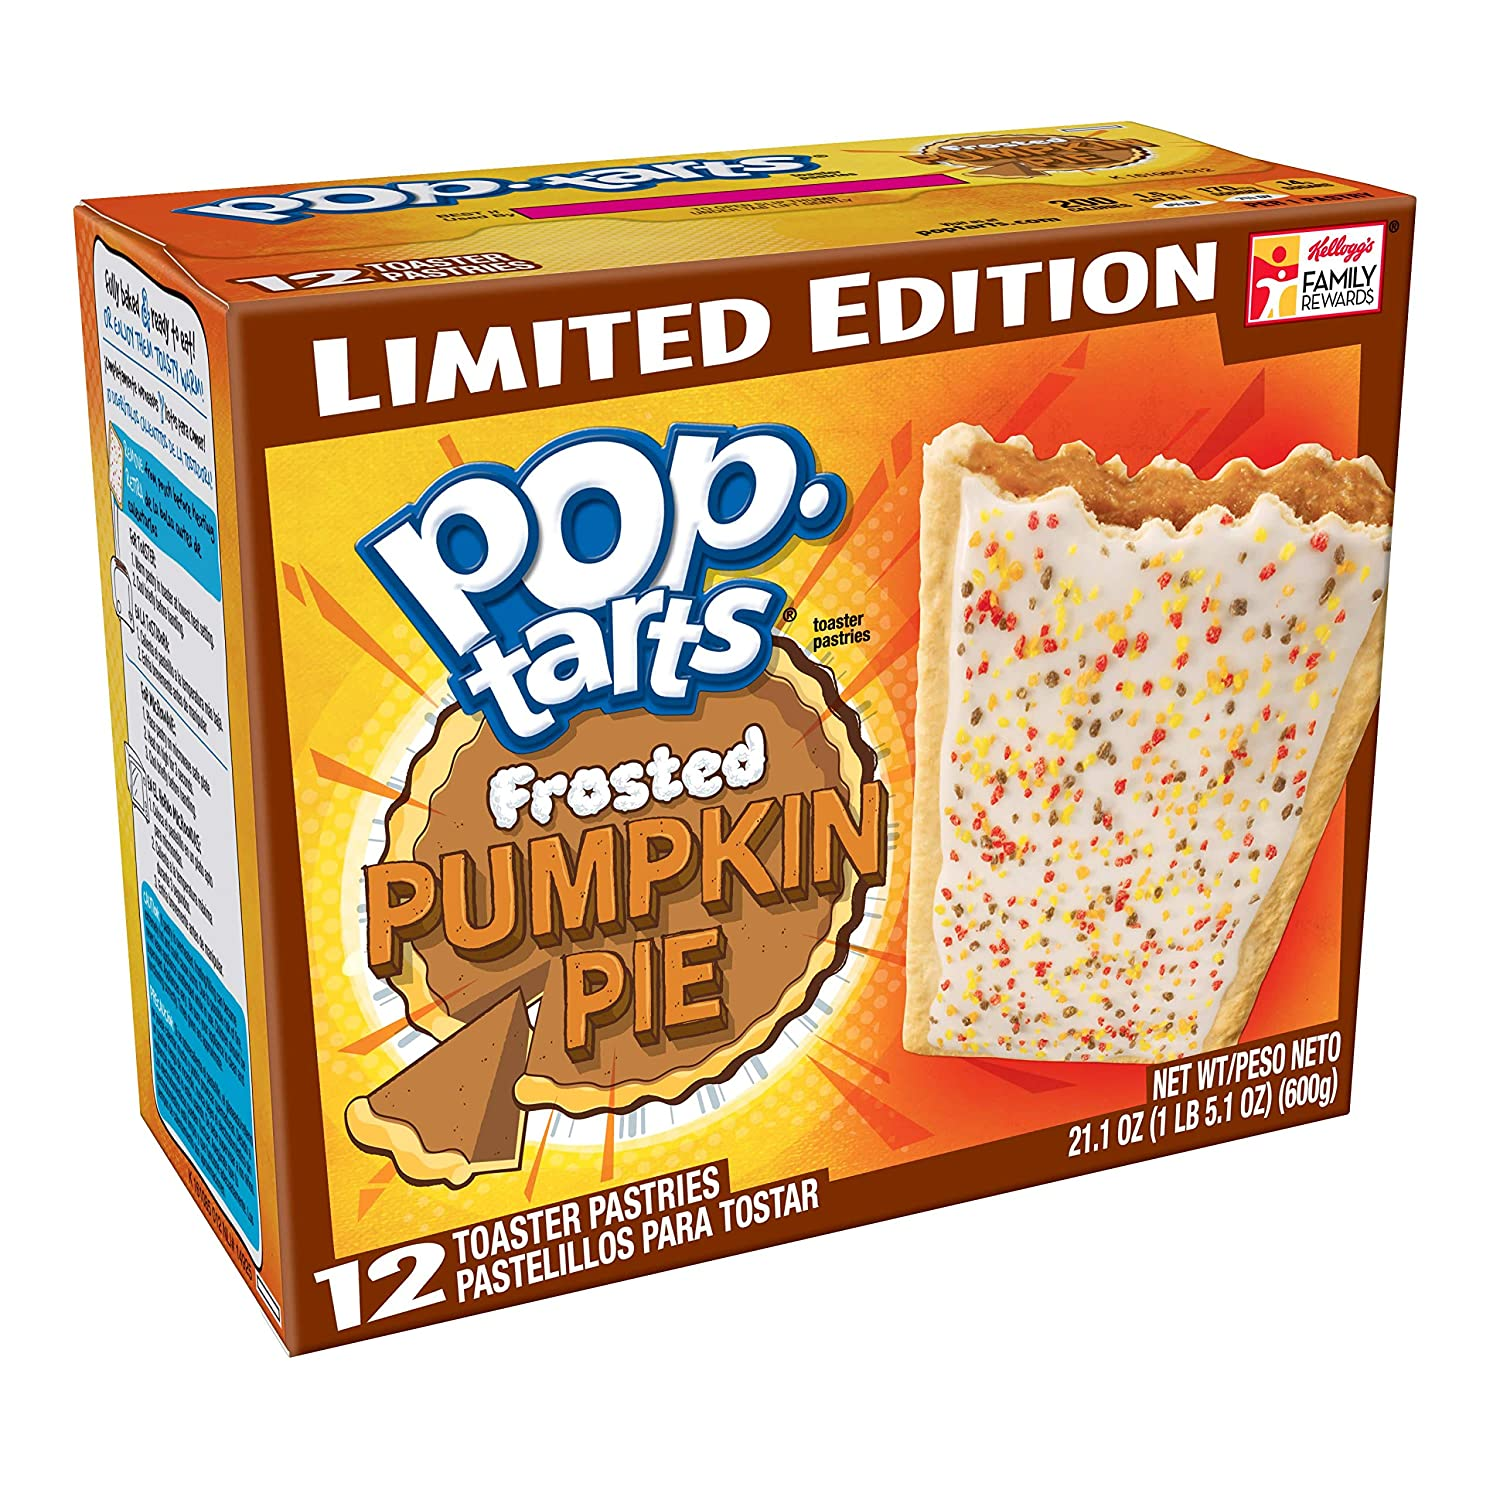 Pop-Tarts BreakfastToaster Pastries, Frosted Pumpkin Pie Flavored, Limited Edition, 21.1 oz (12 Count)